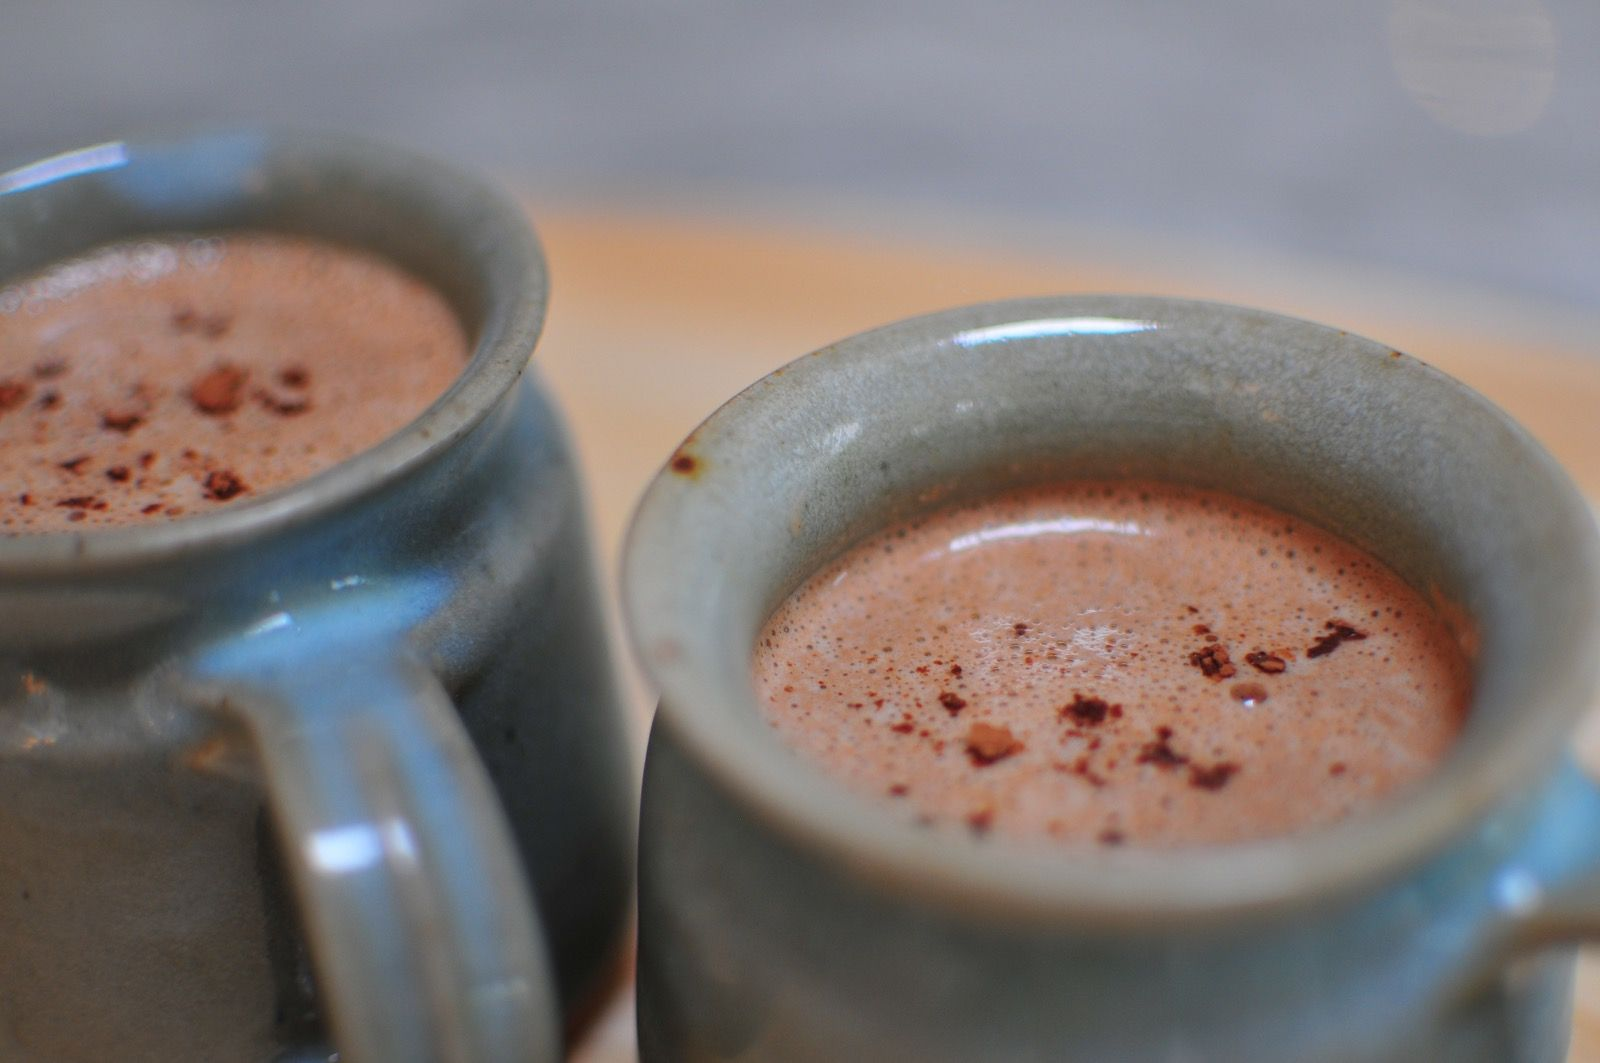 Raw hot chocolate - a hug in a mug.  Warming, creamy and decadent and totally good for you. #rawfood #healthyeating #rawhotchocolate